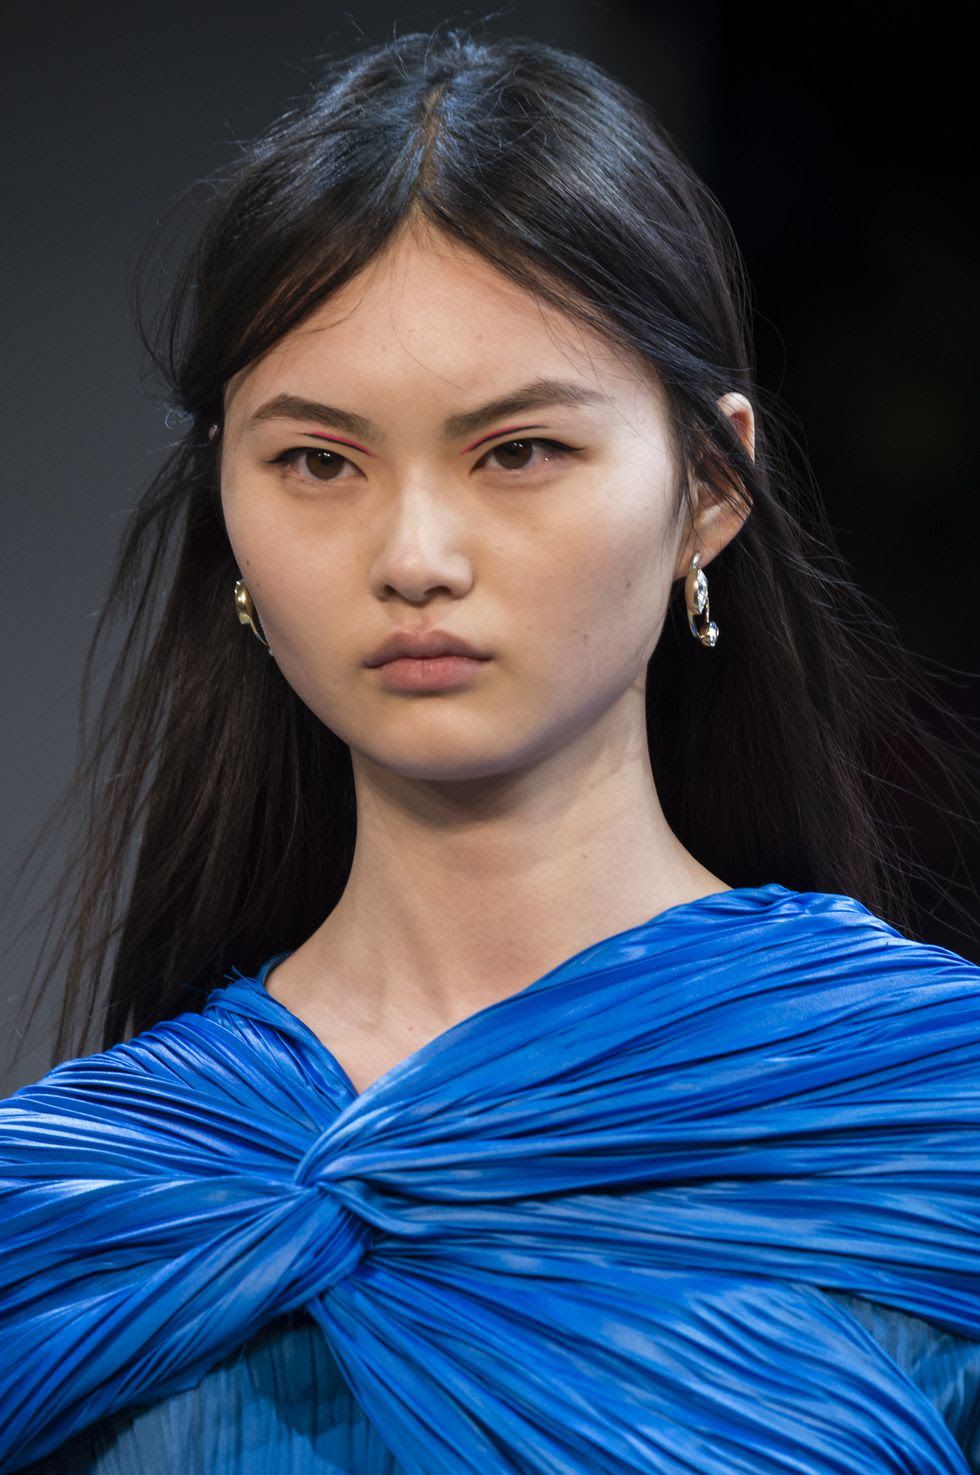 , NYC Fashion Week Fall/Winter '18 Brow Trends